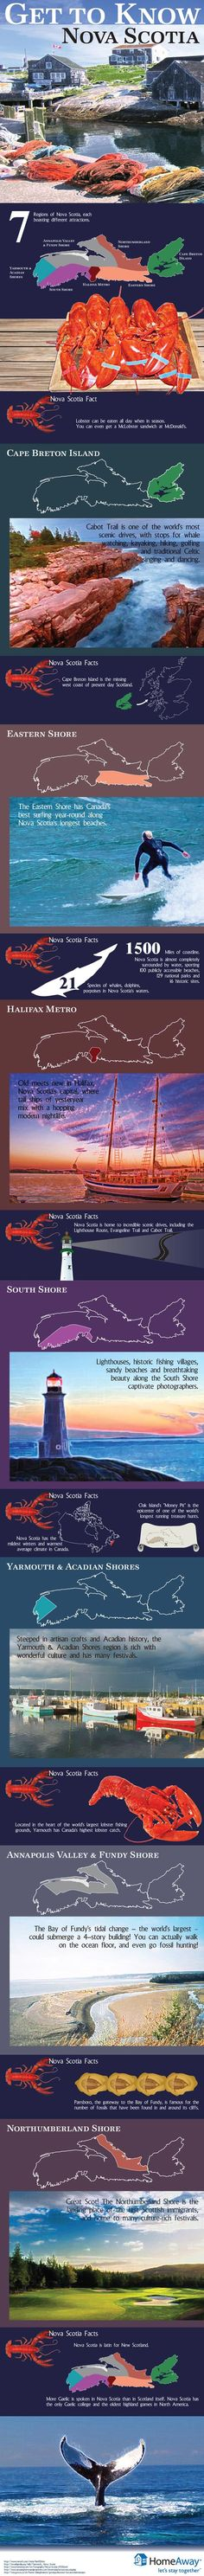 "to Know Nova Scotia ""Fun Facts about Nova Scotia"" I love this! Very cool to know, and so much more to learn.""Fun Facts about Nova Scotia"" I love this! Very cool to know, and so much more to learn. East Coast Travel, East Coast Road Trip, O Canada, Canada Travel, Canada Trip, Halifax Canada, Alberta Canada, Camping Jeep, Oh The Places You'll Go"